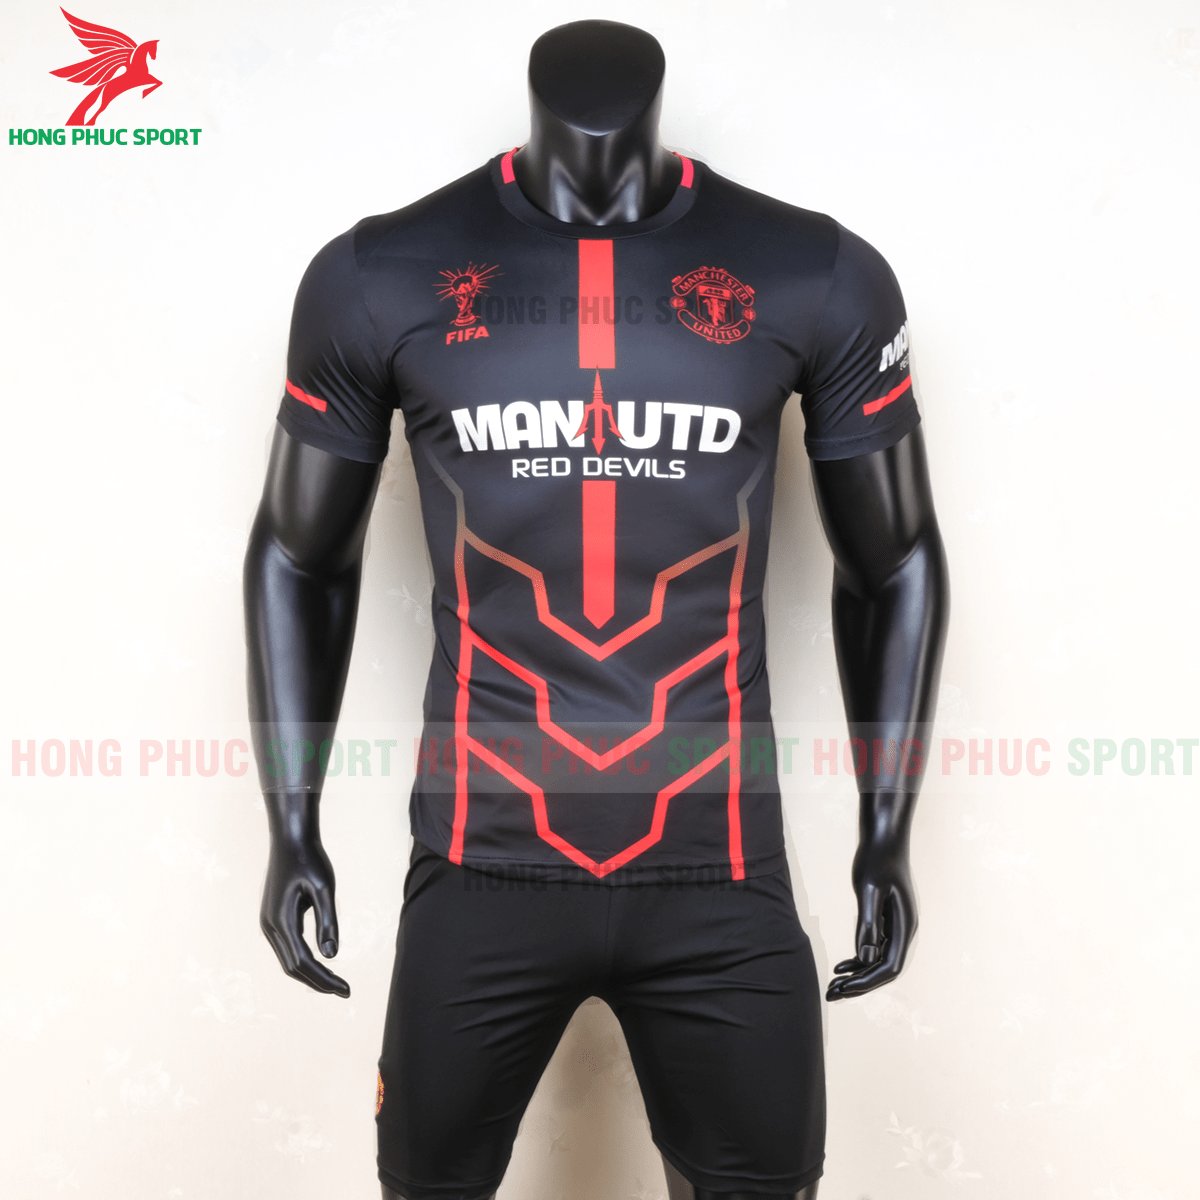 https://cdn.hongphucsport.com/unsafe/s4.shopbay.vn/files/285/ao-manchester-united-2020-phien-ban-fan-1-5f72e25018fd0.png